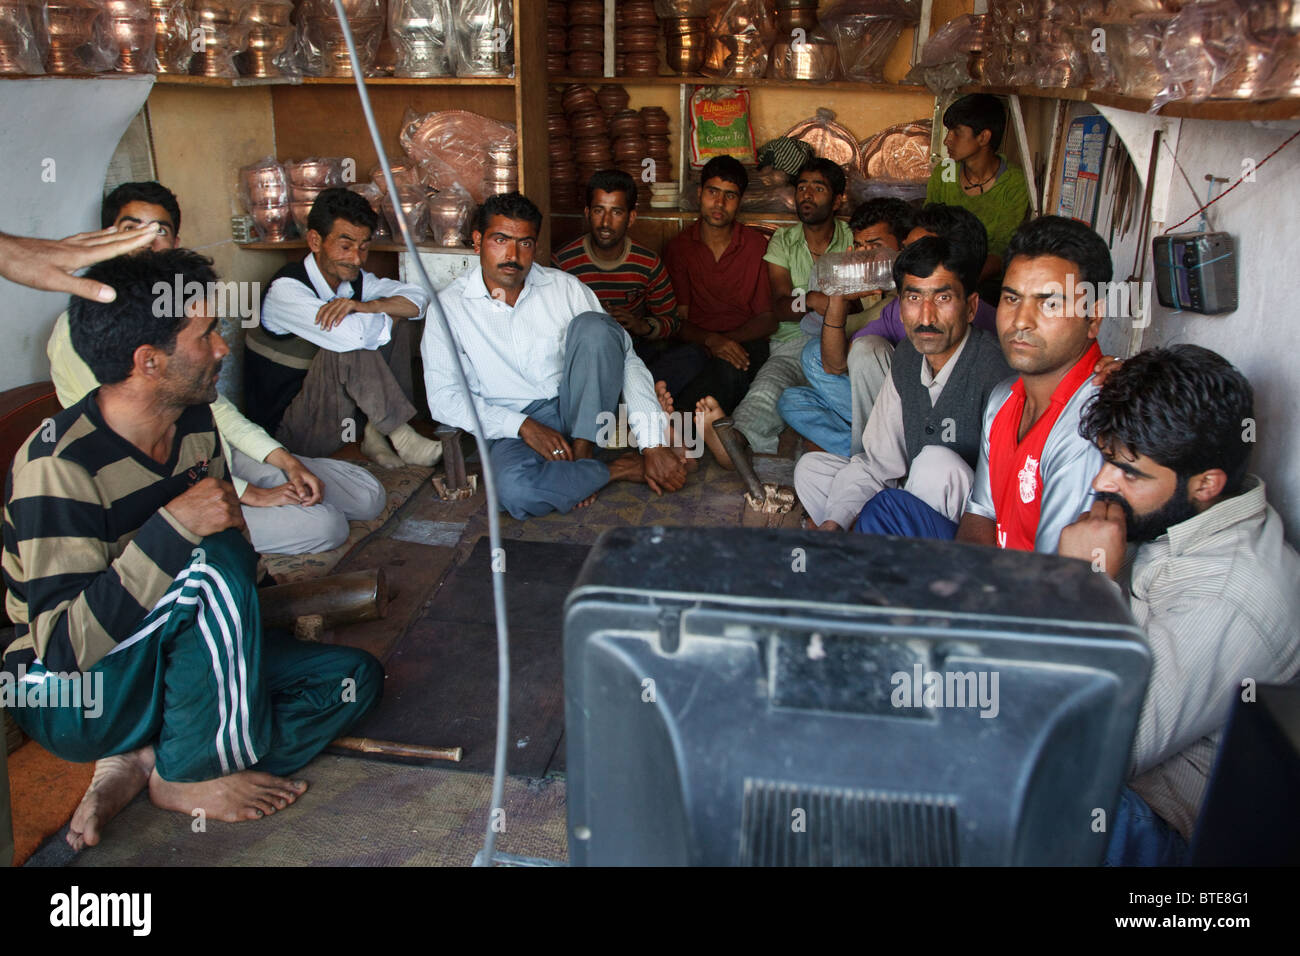 Men watch an India-Pakistan cricket match on a TV in a small shop in Srinagar, Jammu and Kashmir, India - Stock Image